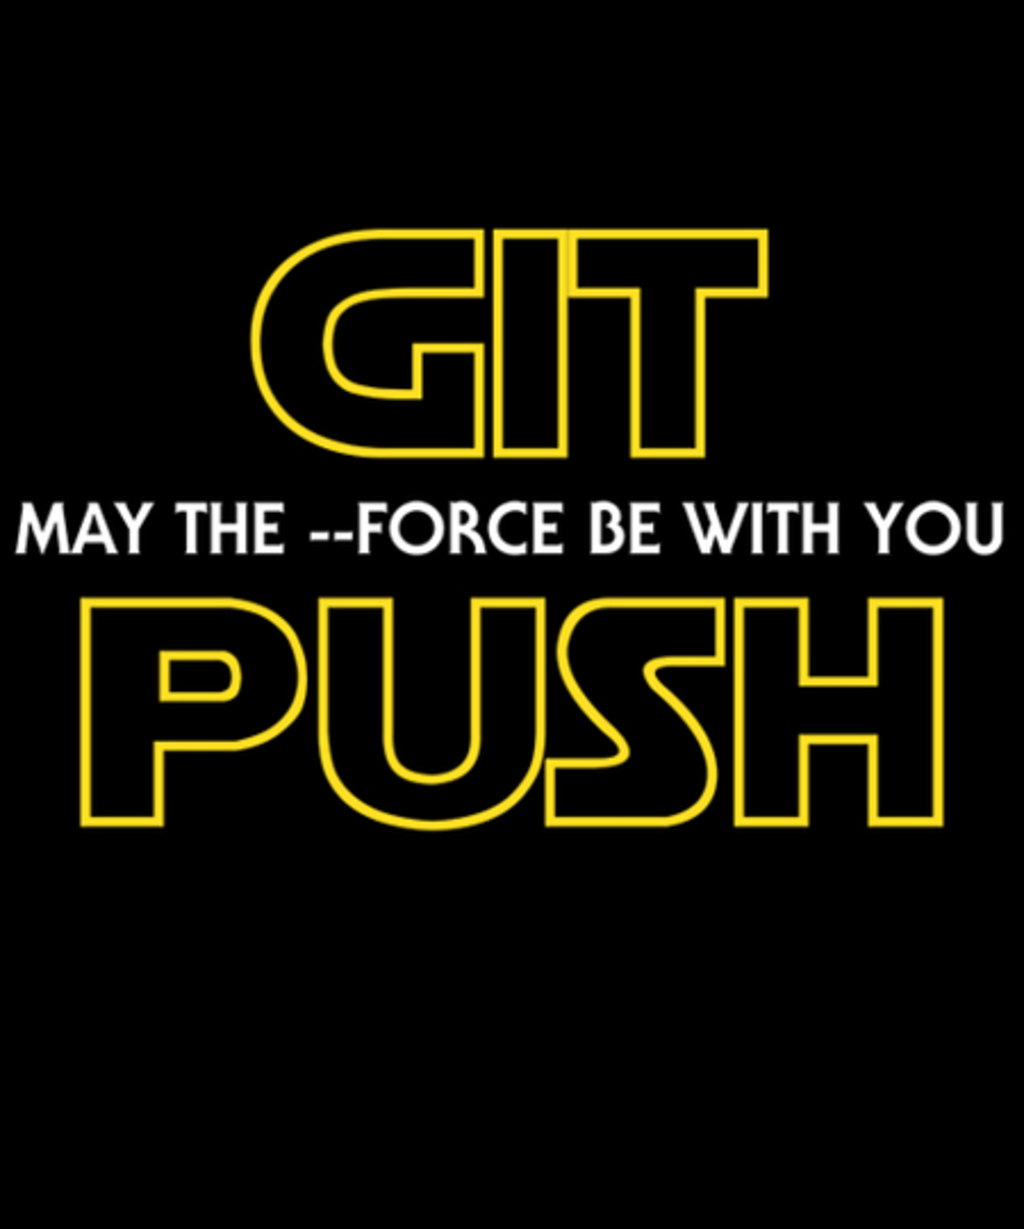 Qwertee: May the --force be with you